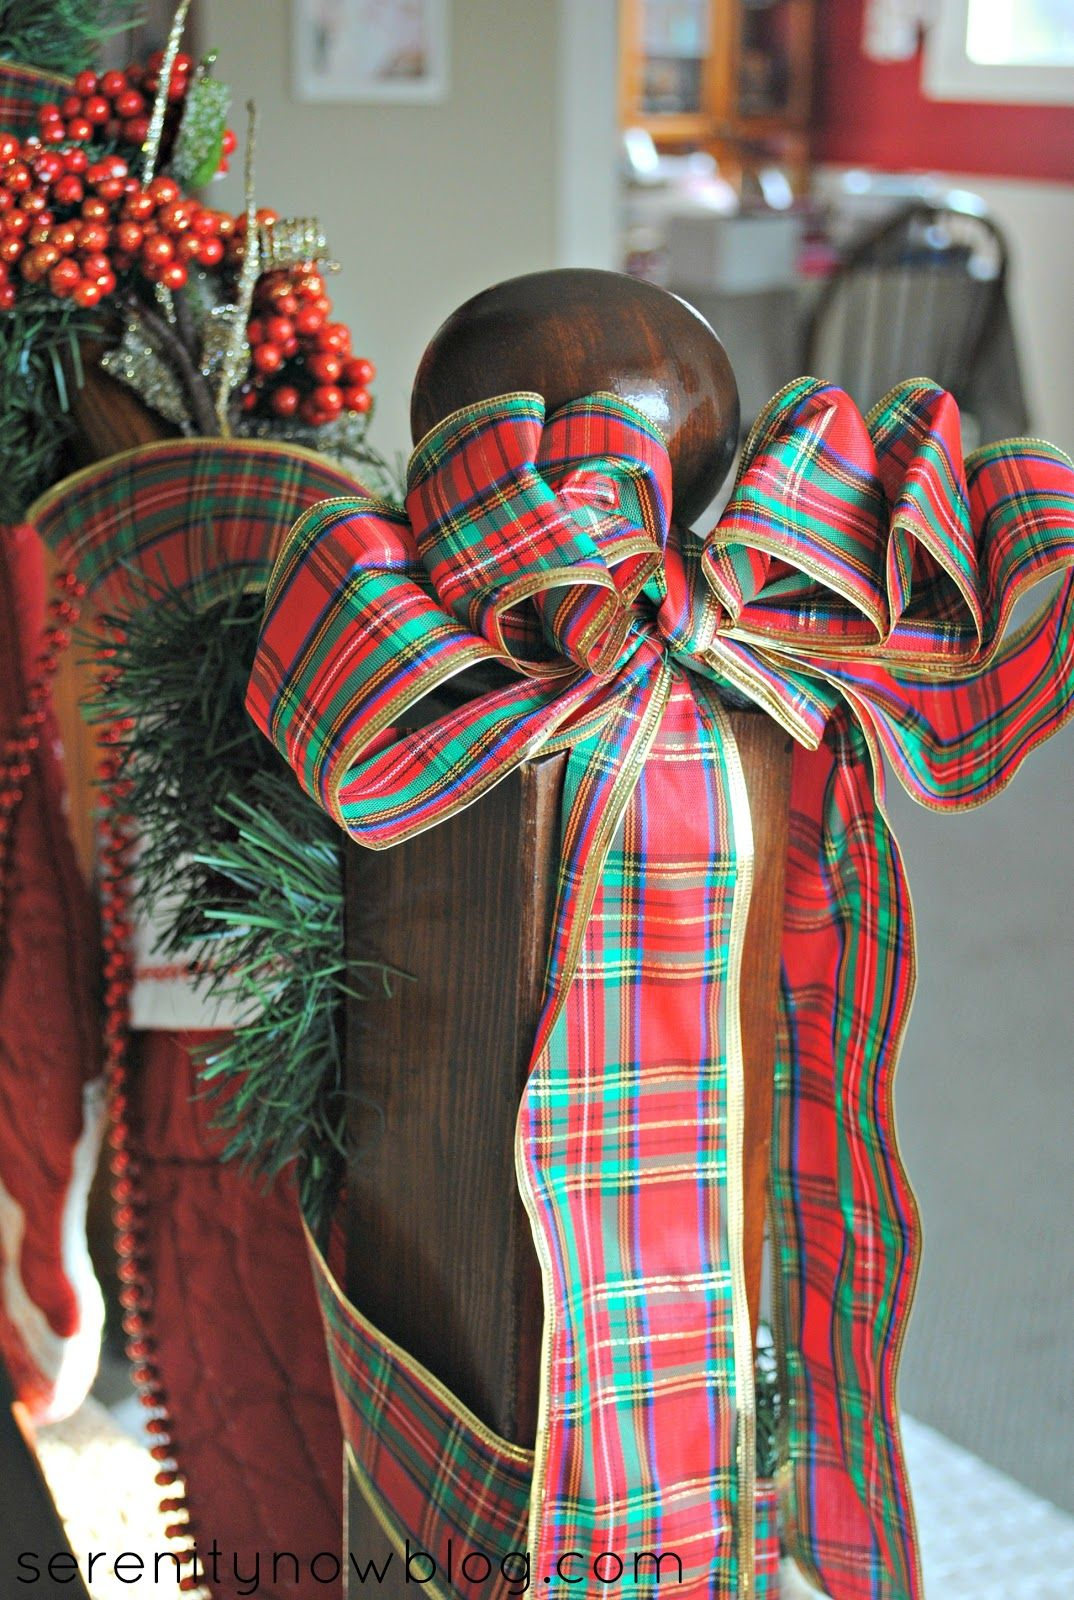 Super pretty Christmas decorations - and such a cozy house from @serenitynowgirl